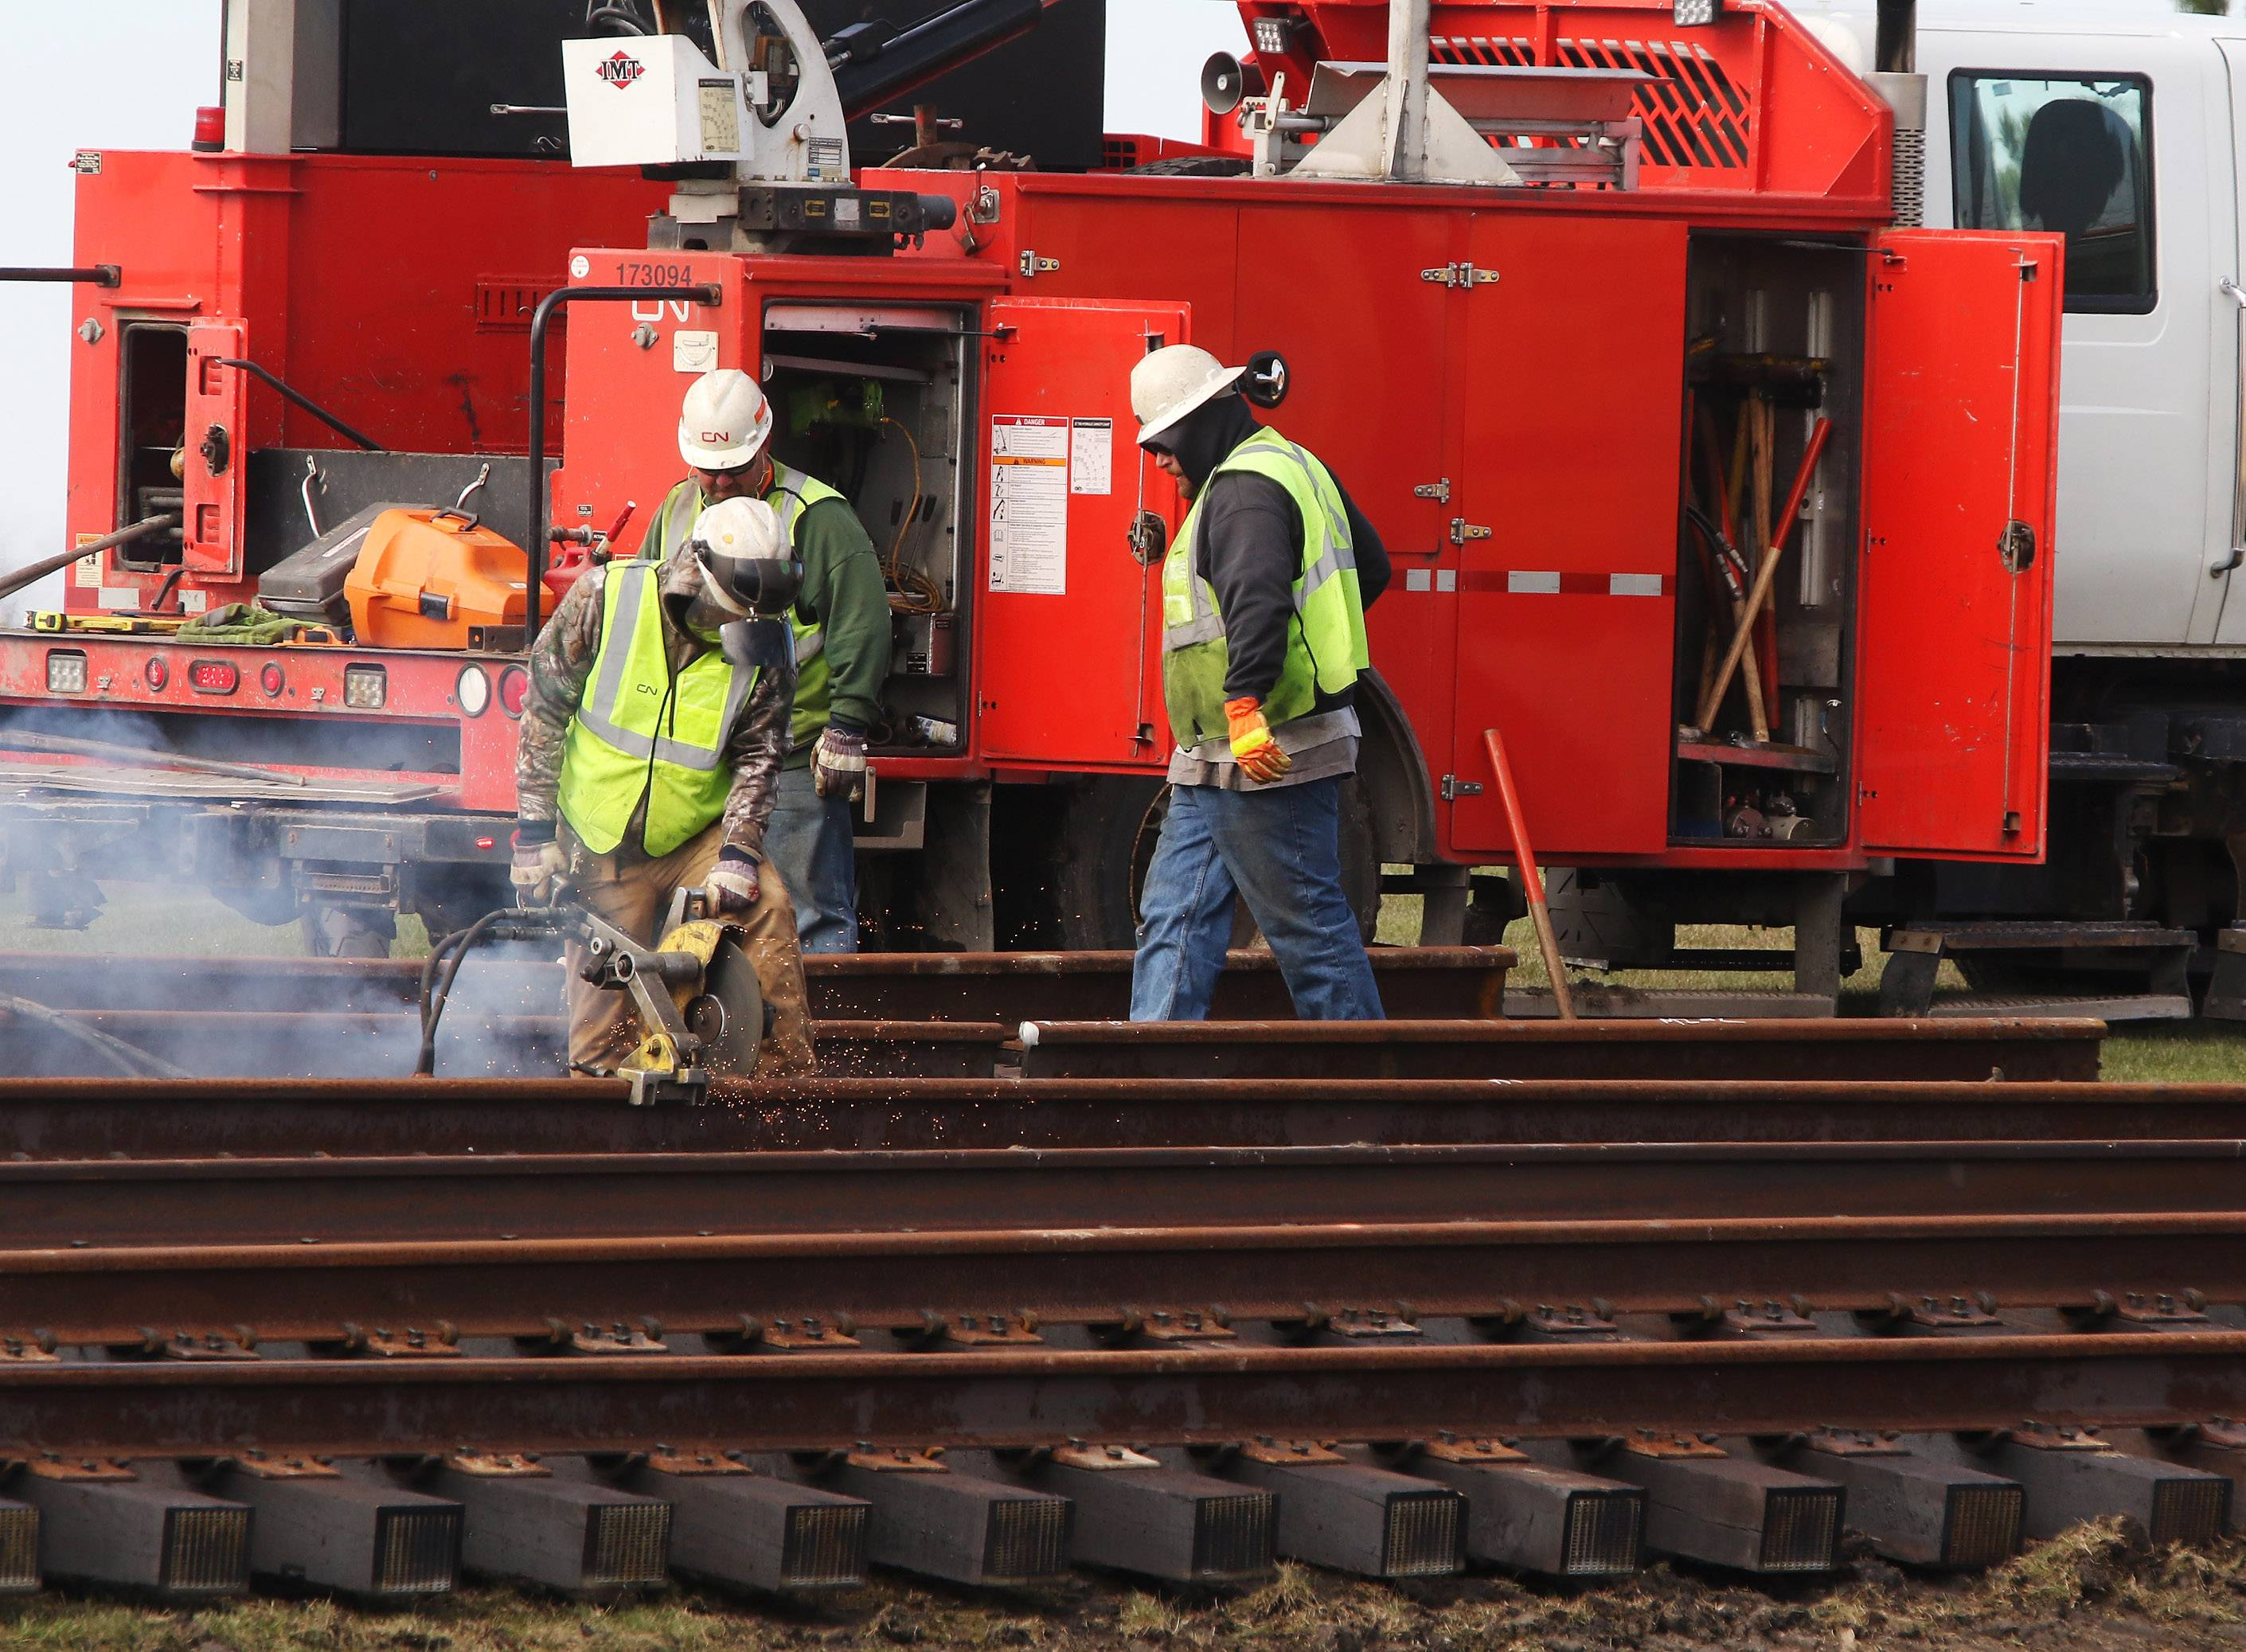 Construction crews from the Wisconsin Central Ltd. Railroad worked on the rails Monday during repair work at Hook Drive near Route 83 in Round Lake Beach. The construction will require the crossing to be closed to vehicles until Nov. 15, officials say.